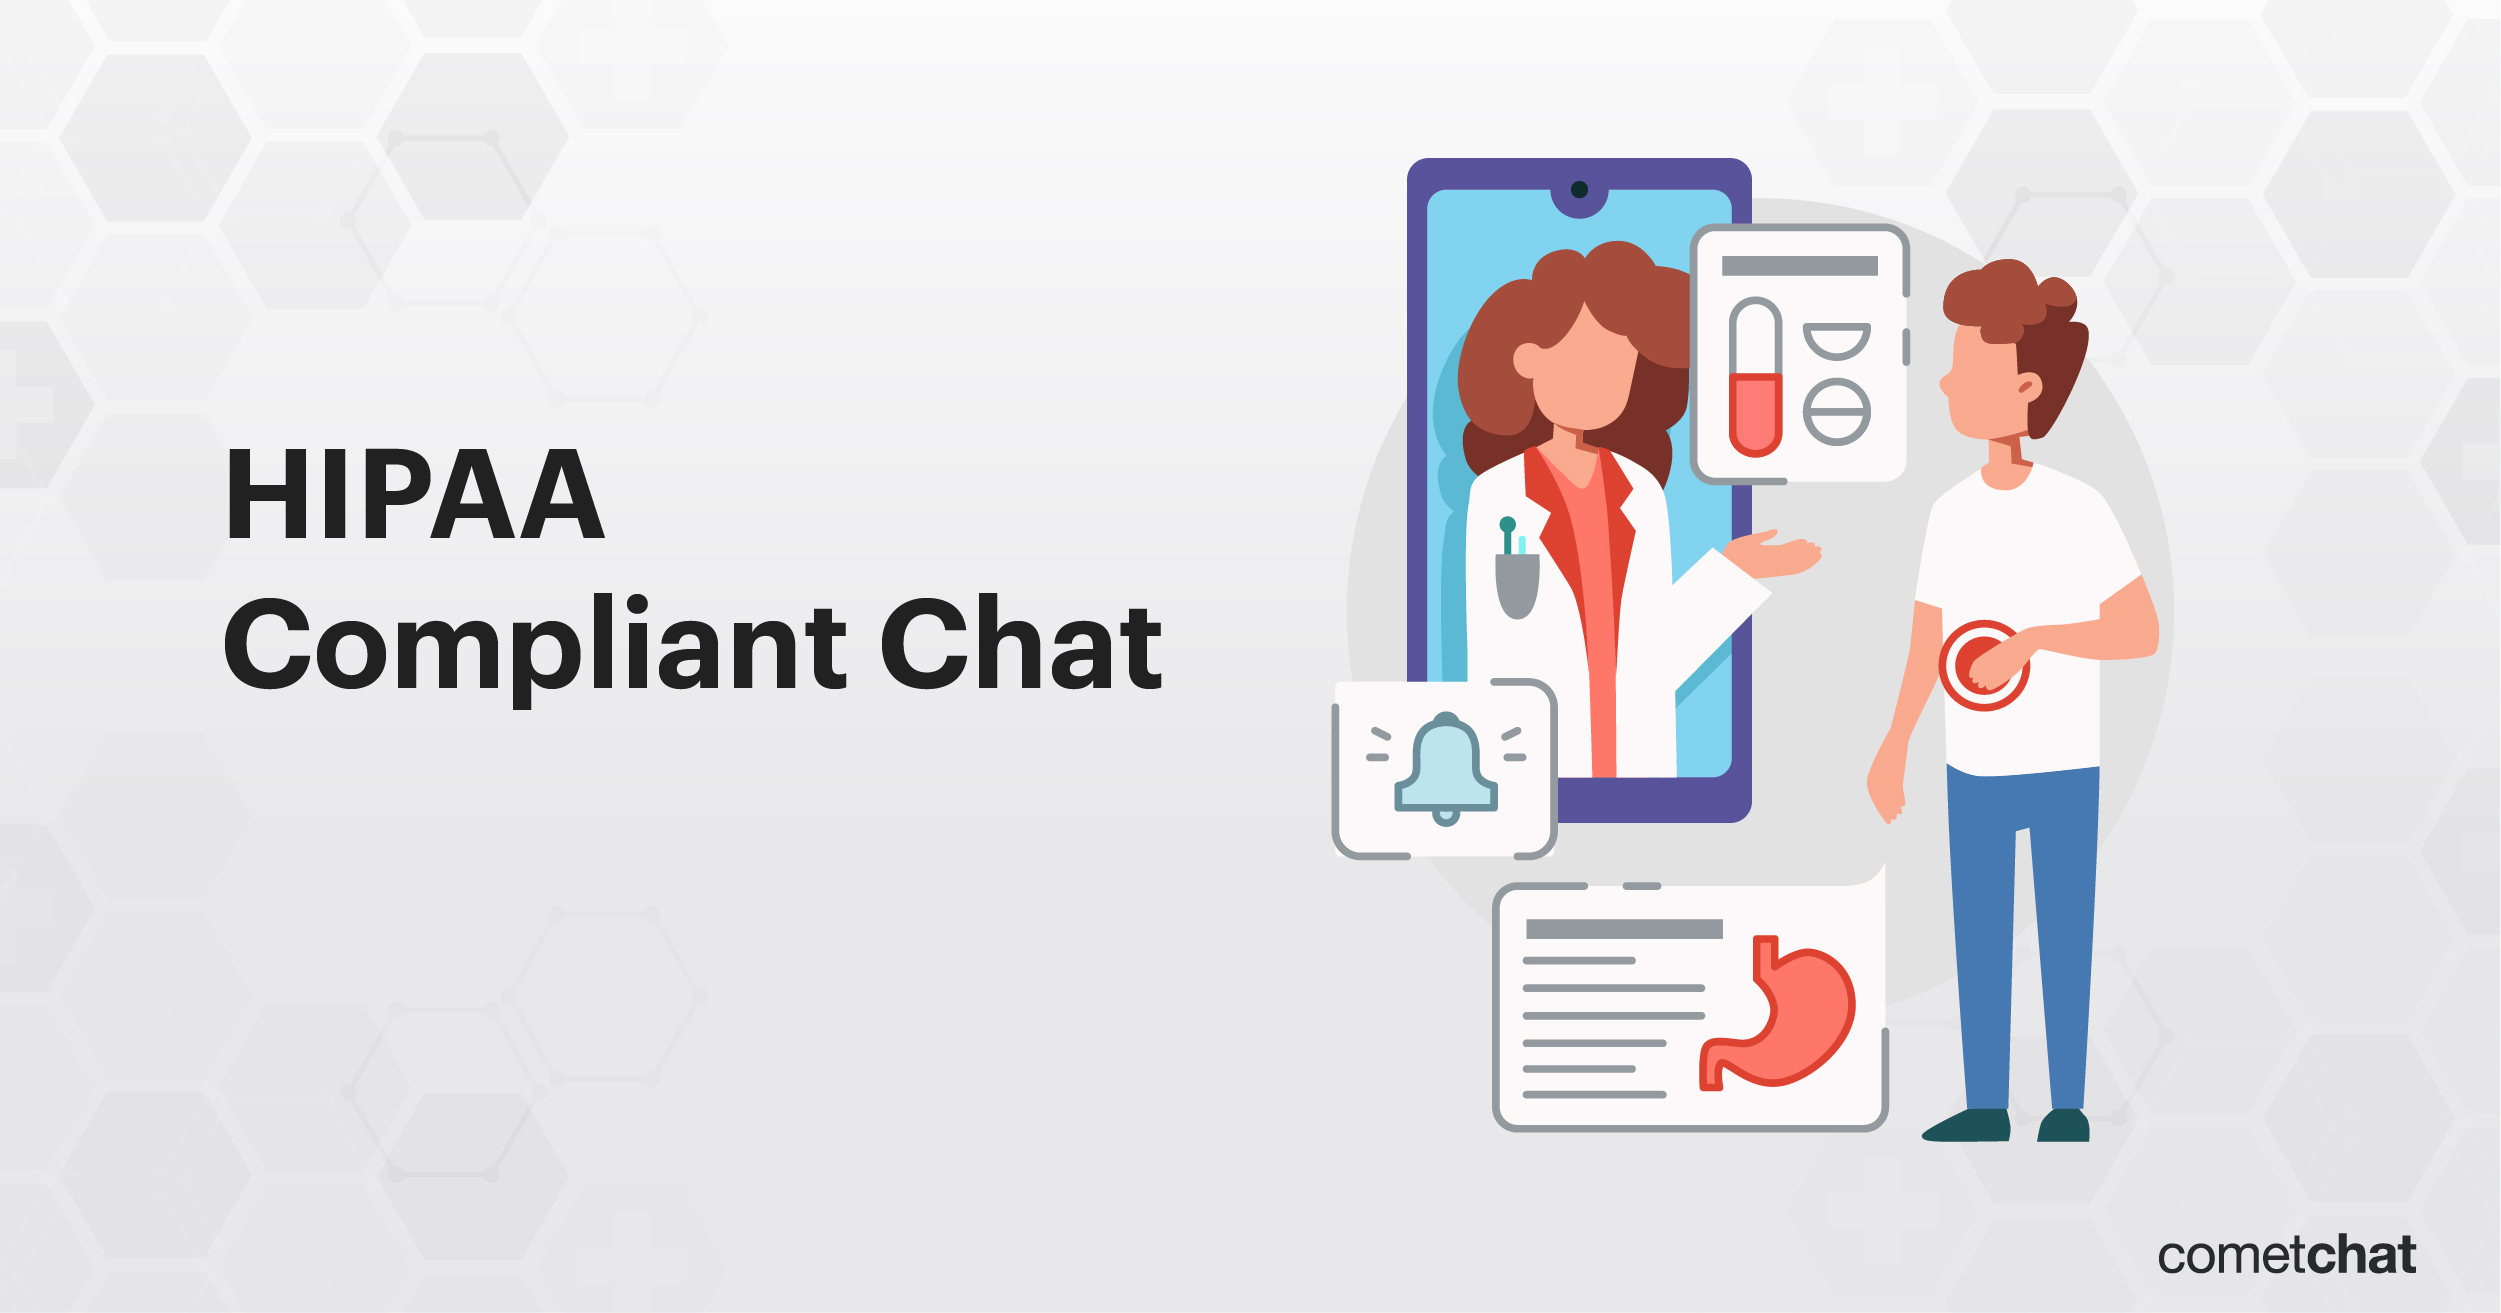 HIPAA Compliant Chat App showing a secure conversation between the doctor and patient